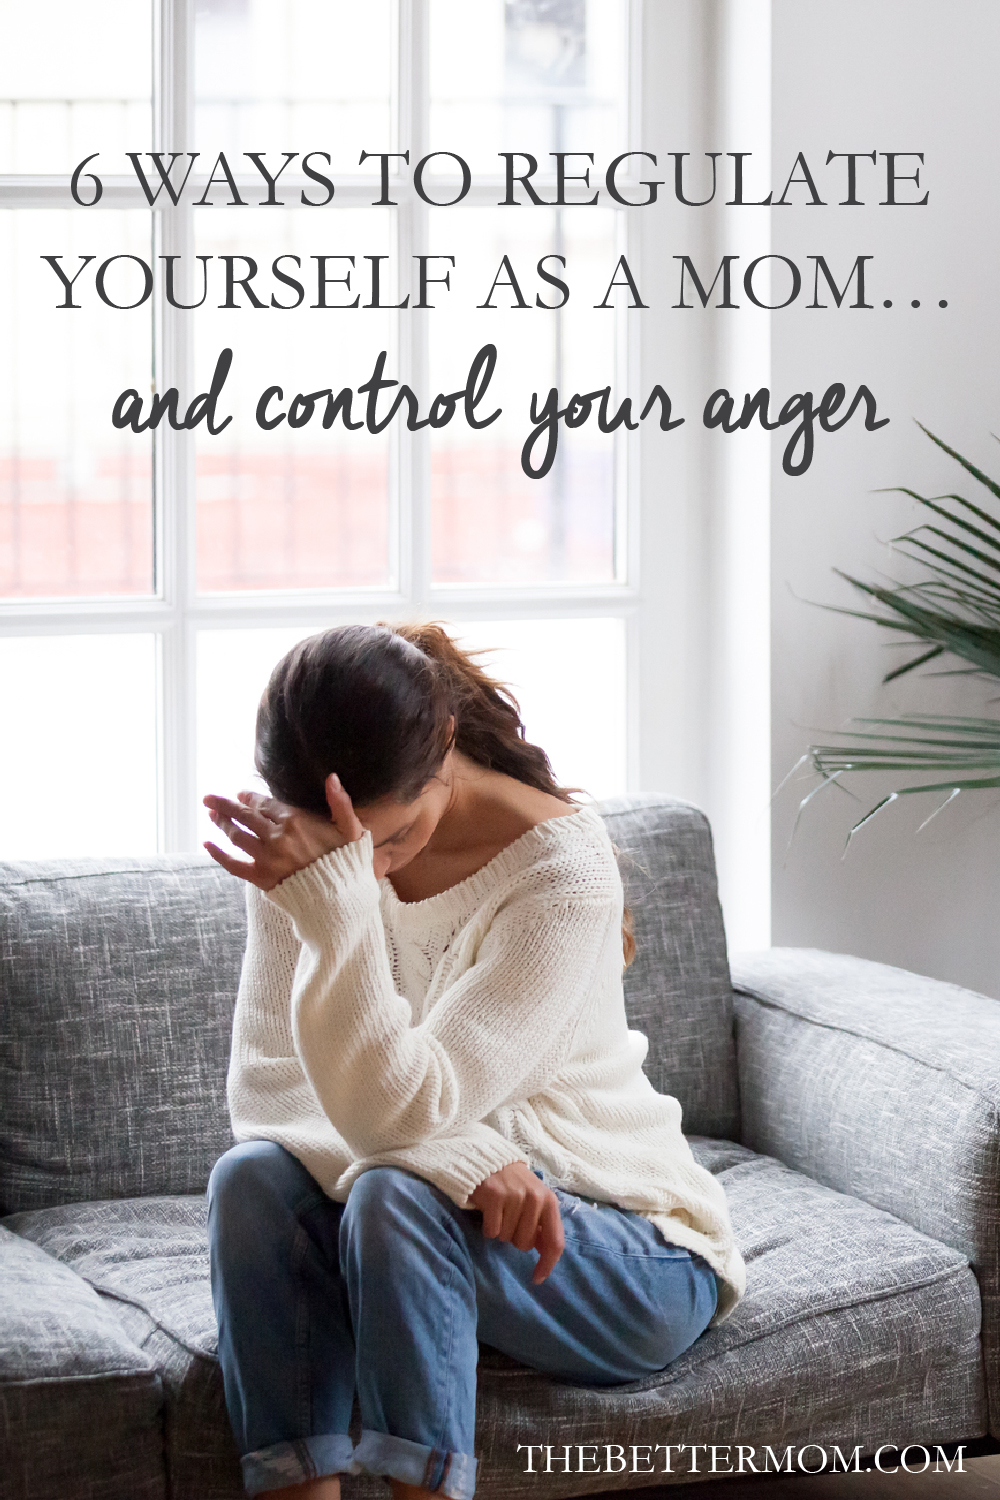 Do you struggle with anger? Find true support and a path toward healing the habit that hurts with these six strategies to help you overcome!